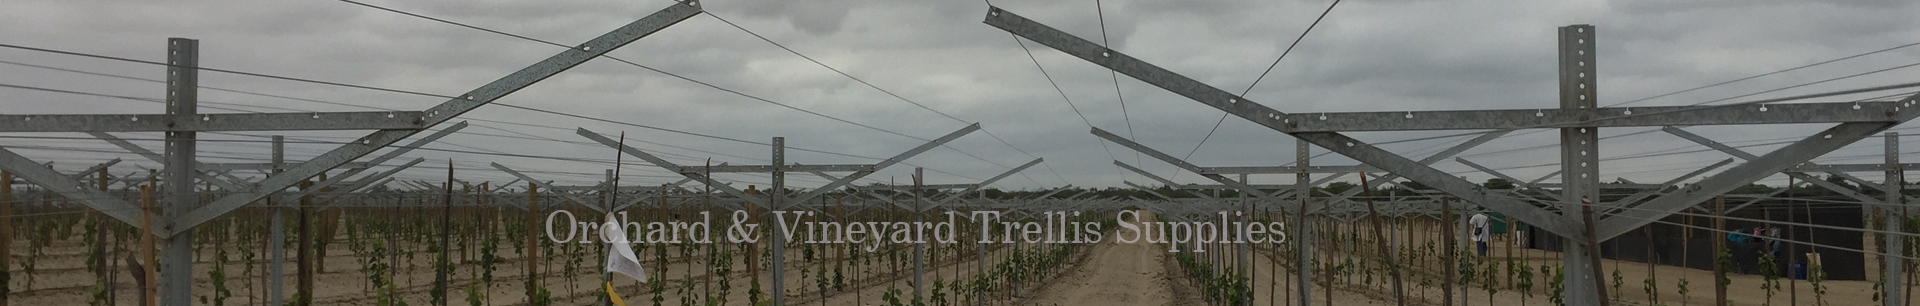 AGROW Orchard and Vineyard Trellis Supplies